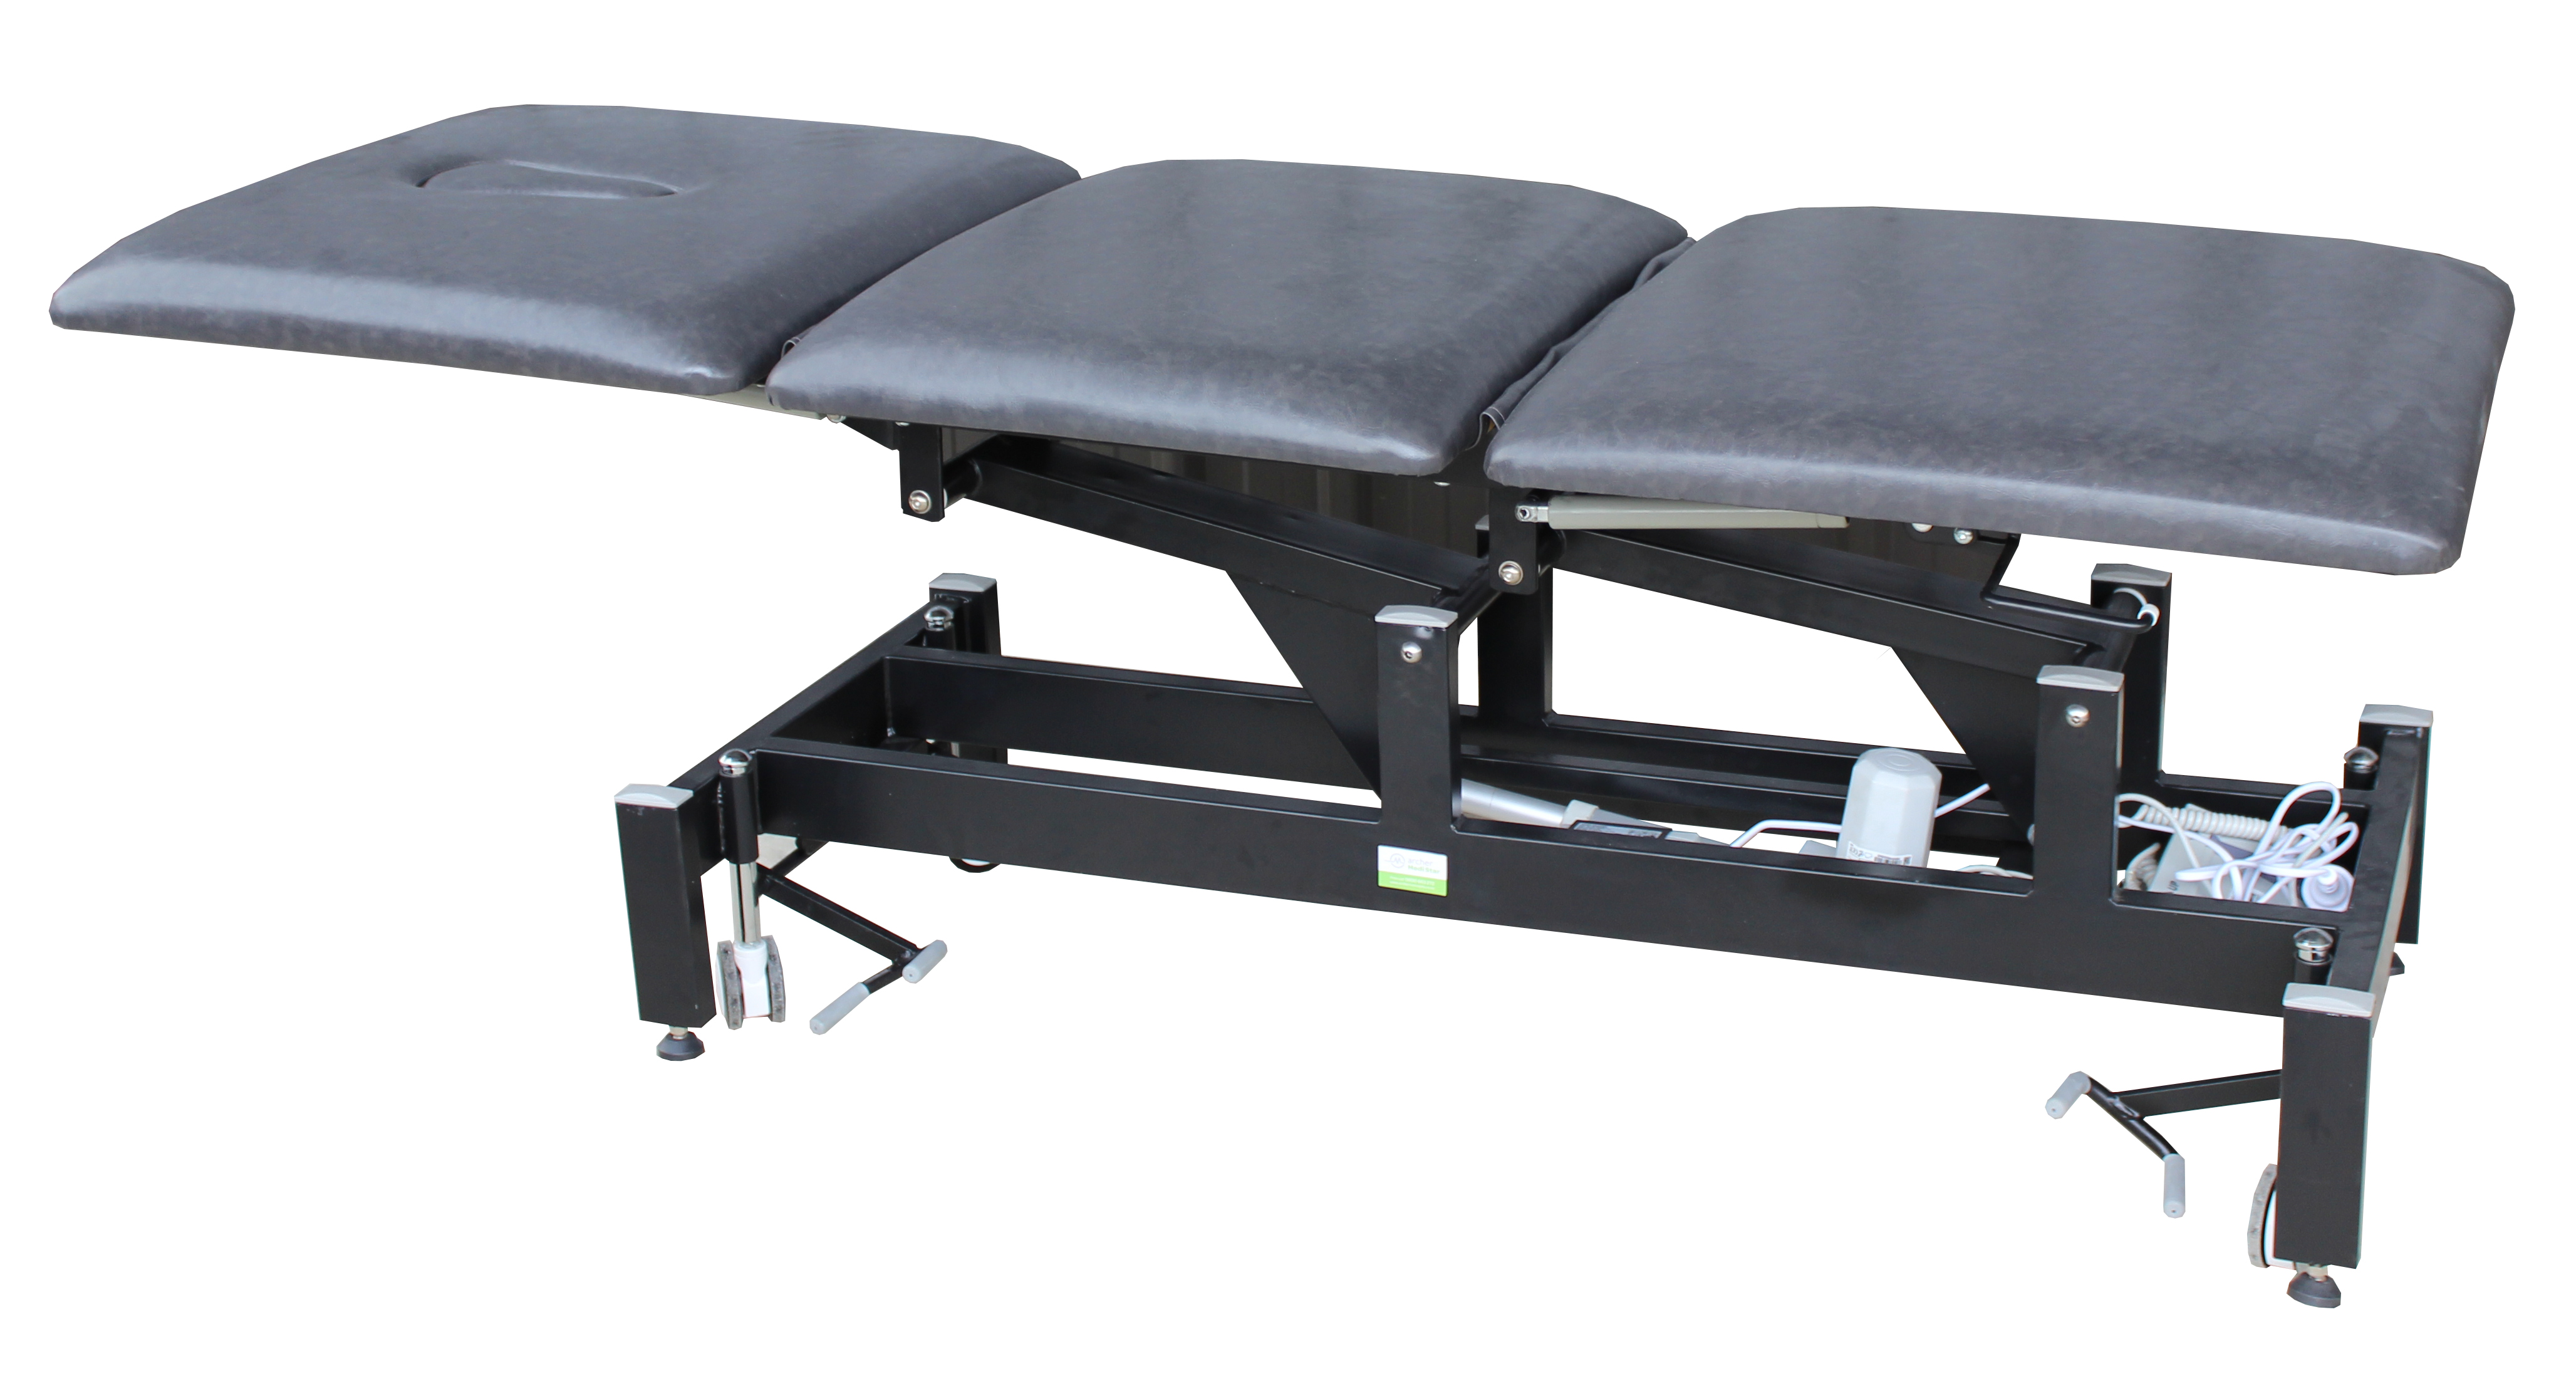 Treatment Tables Medical Medistar 3 Section Plinth, angle view, lying flat